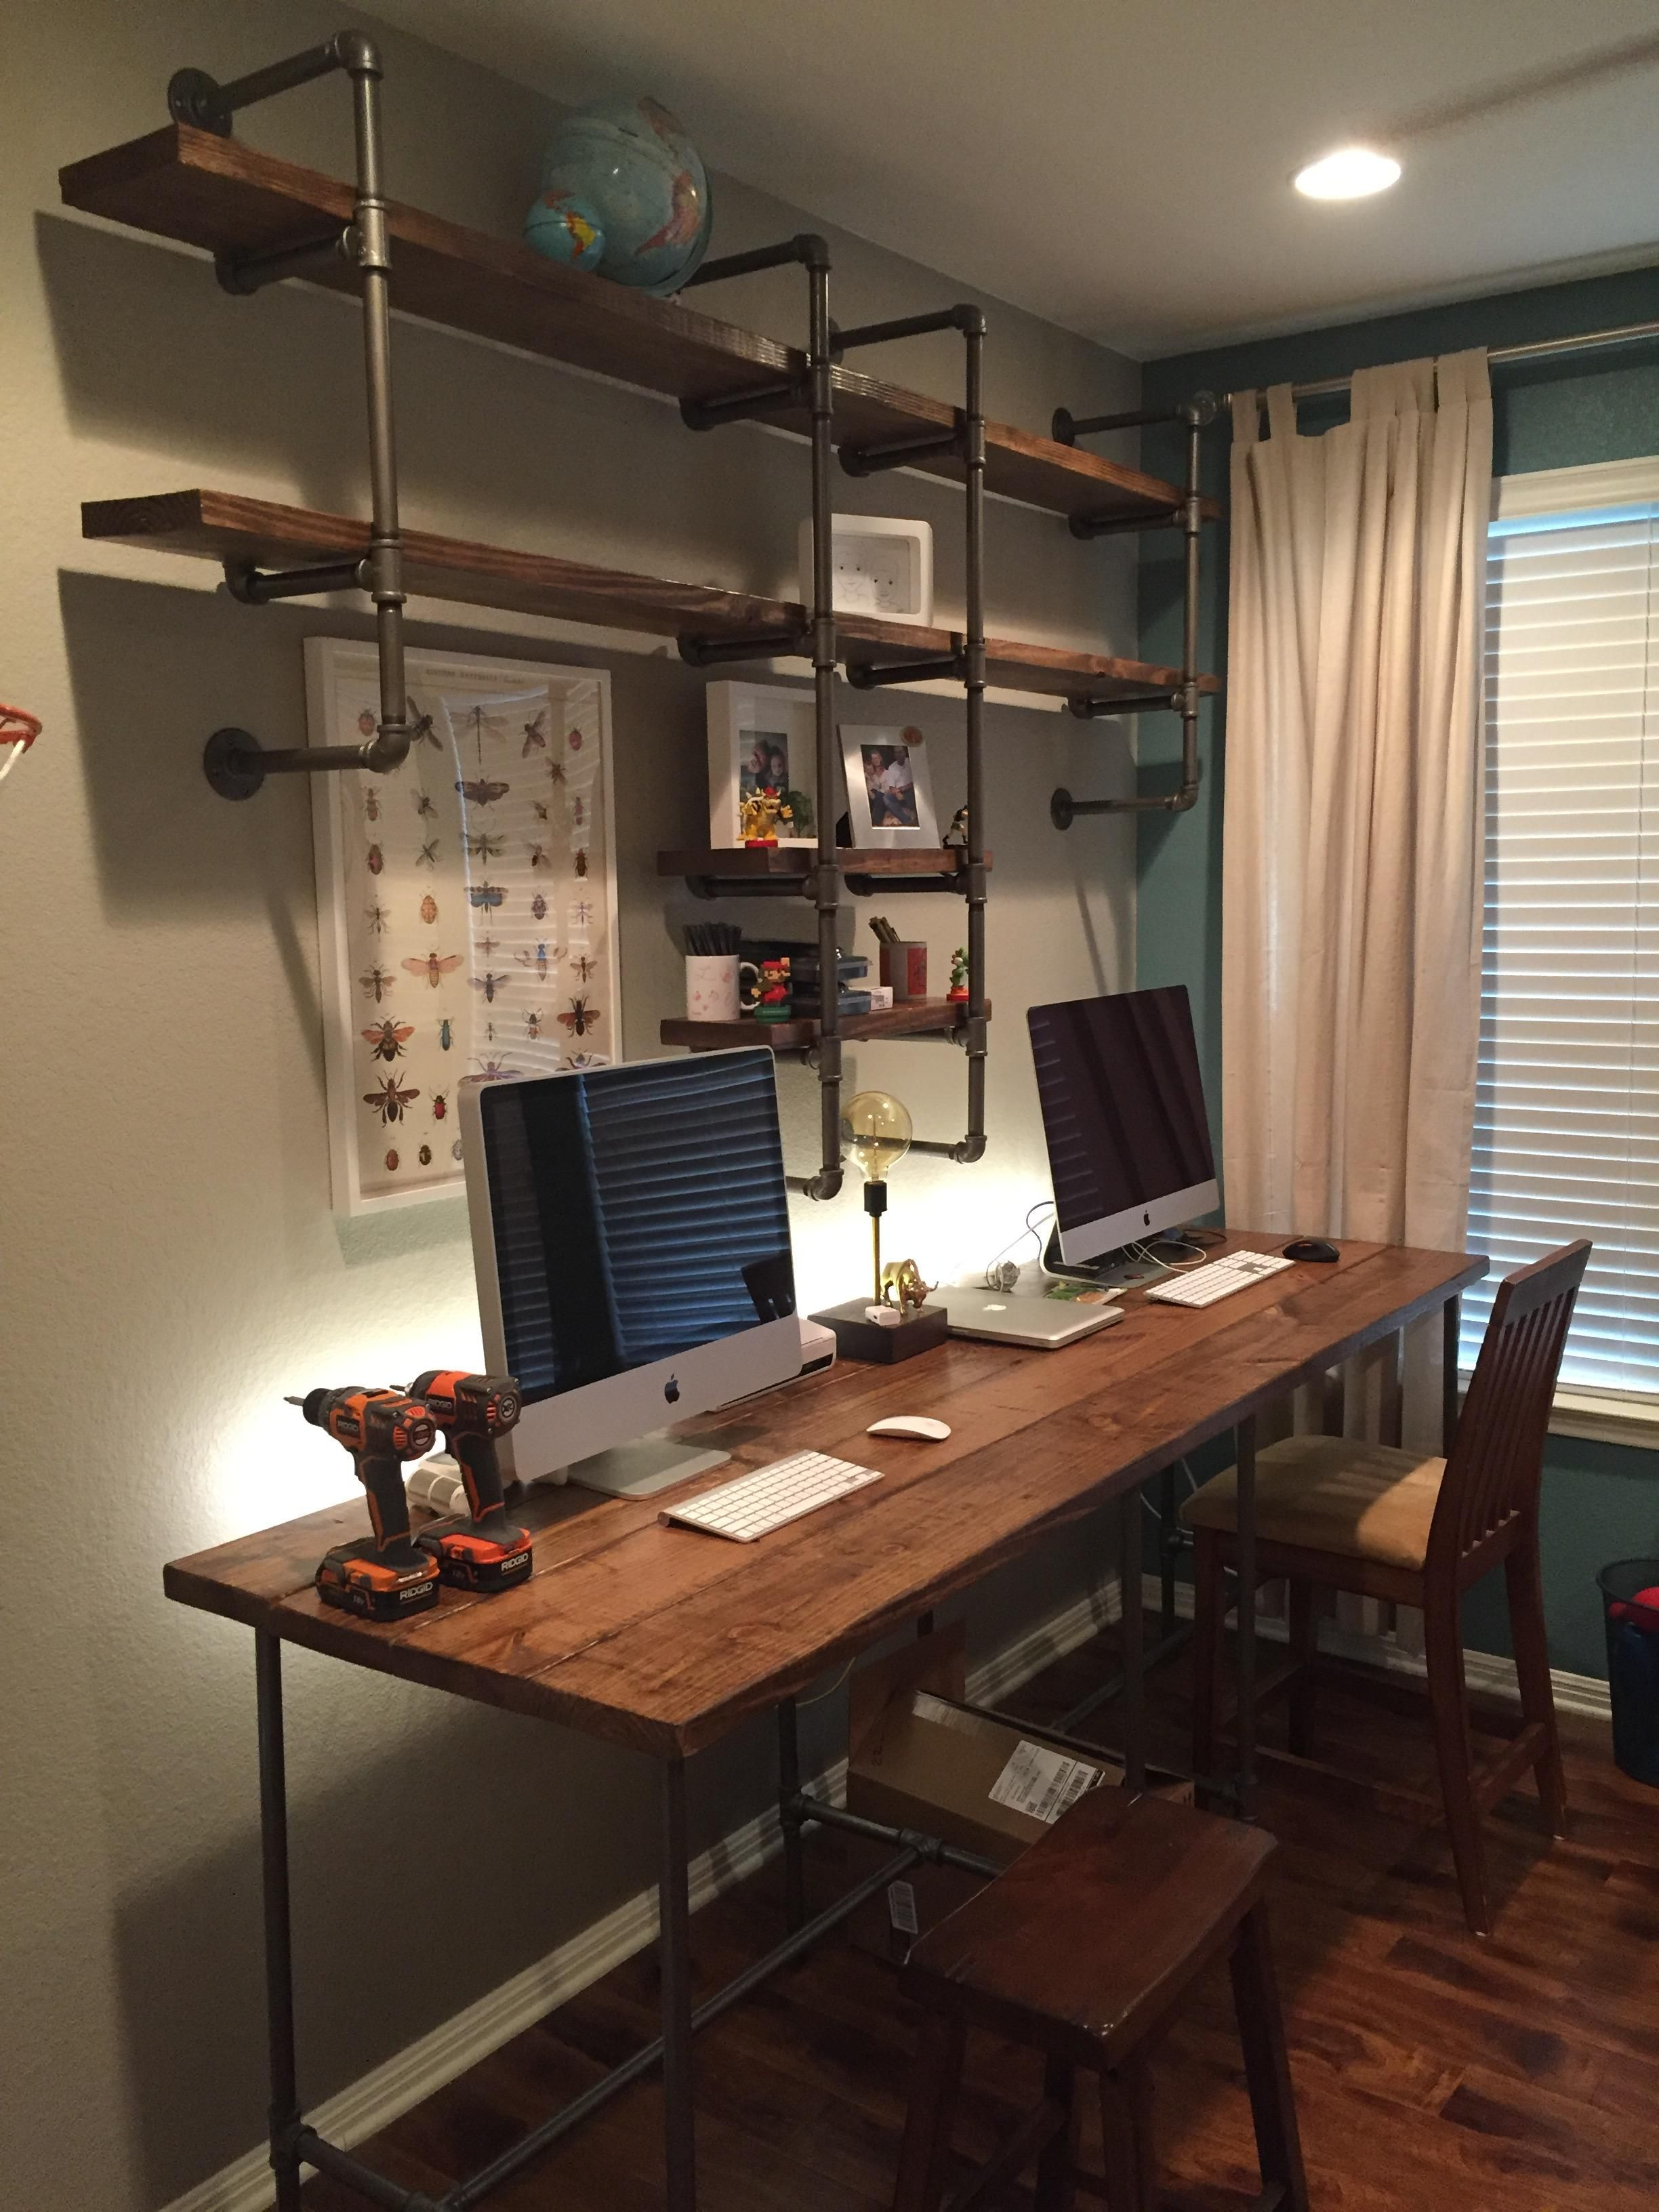 Custom Desk U0026 Shelves Made From Wood U0026 Pipe   Album On Imgur U2026